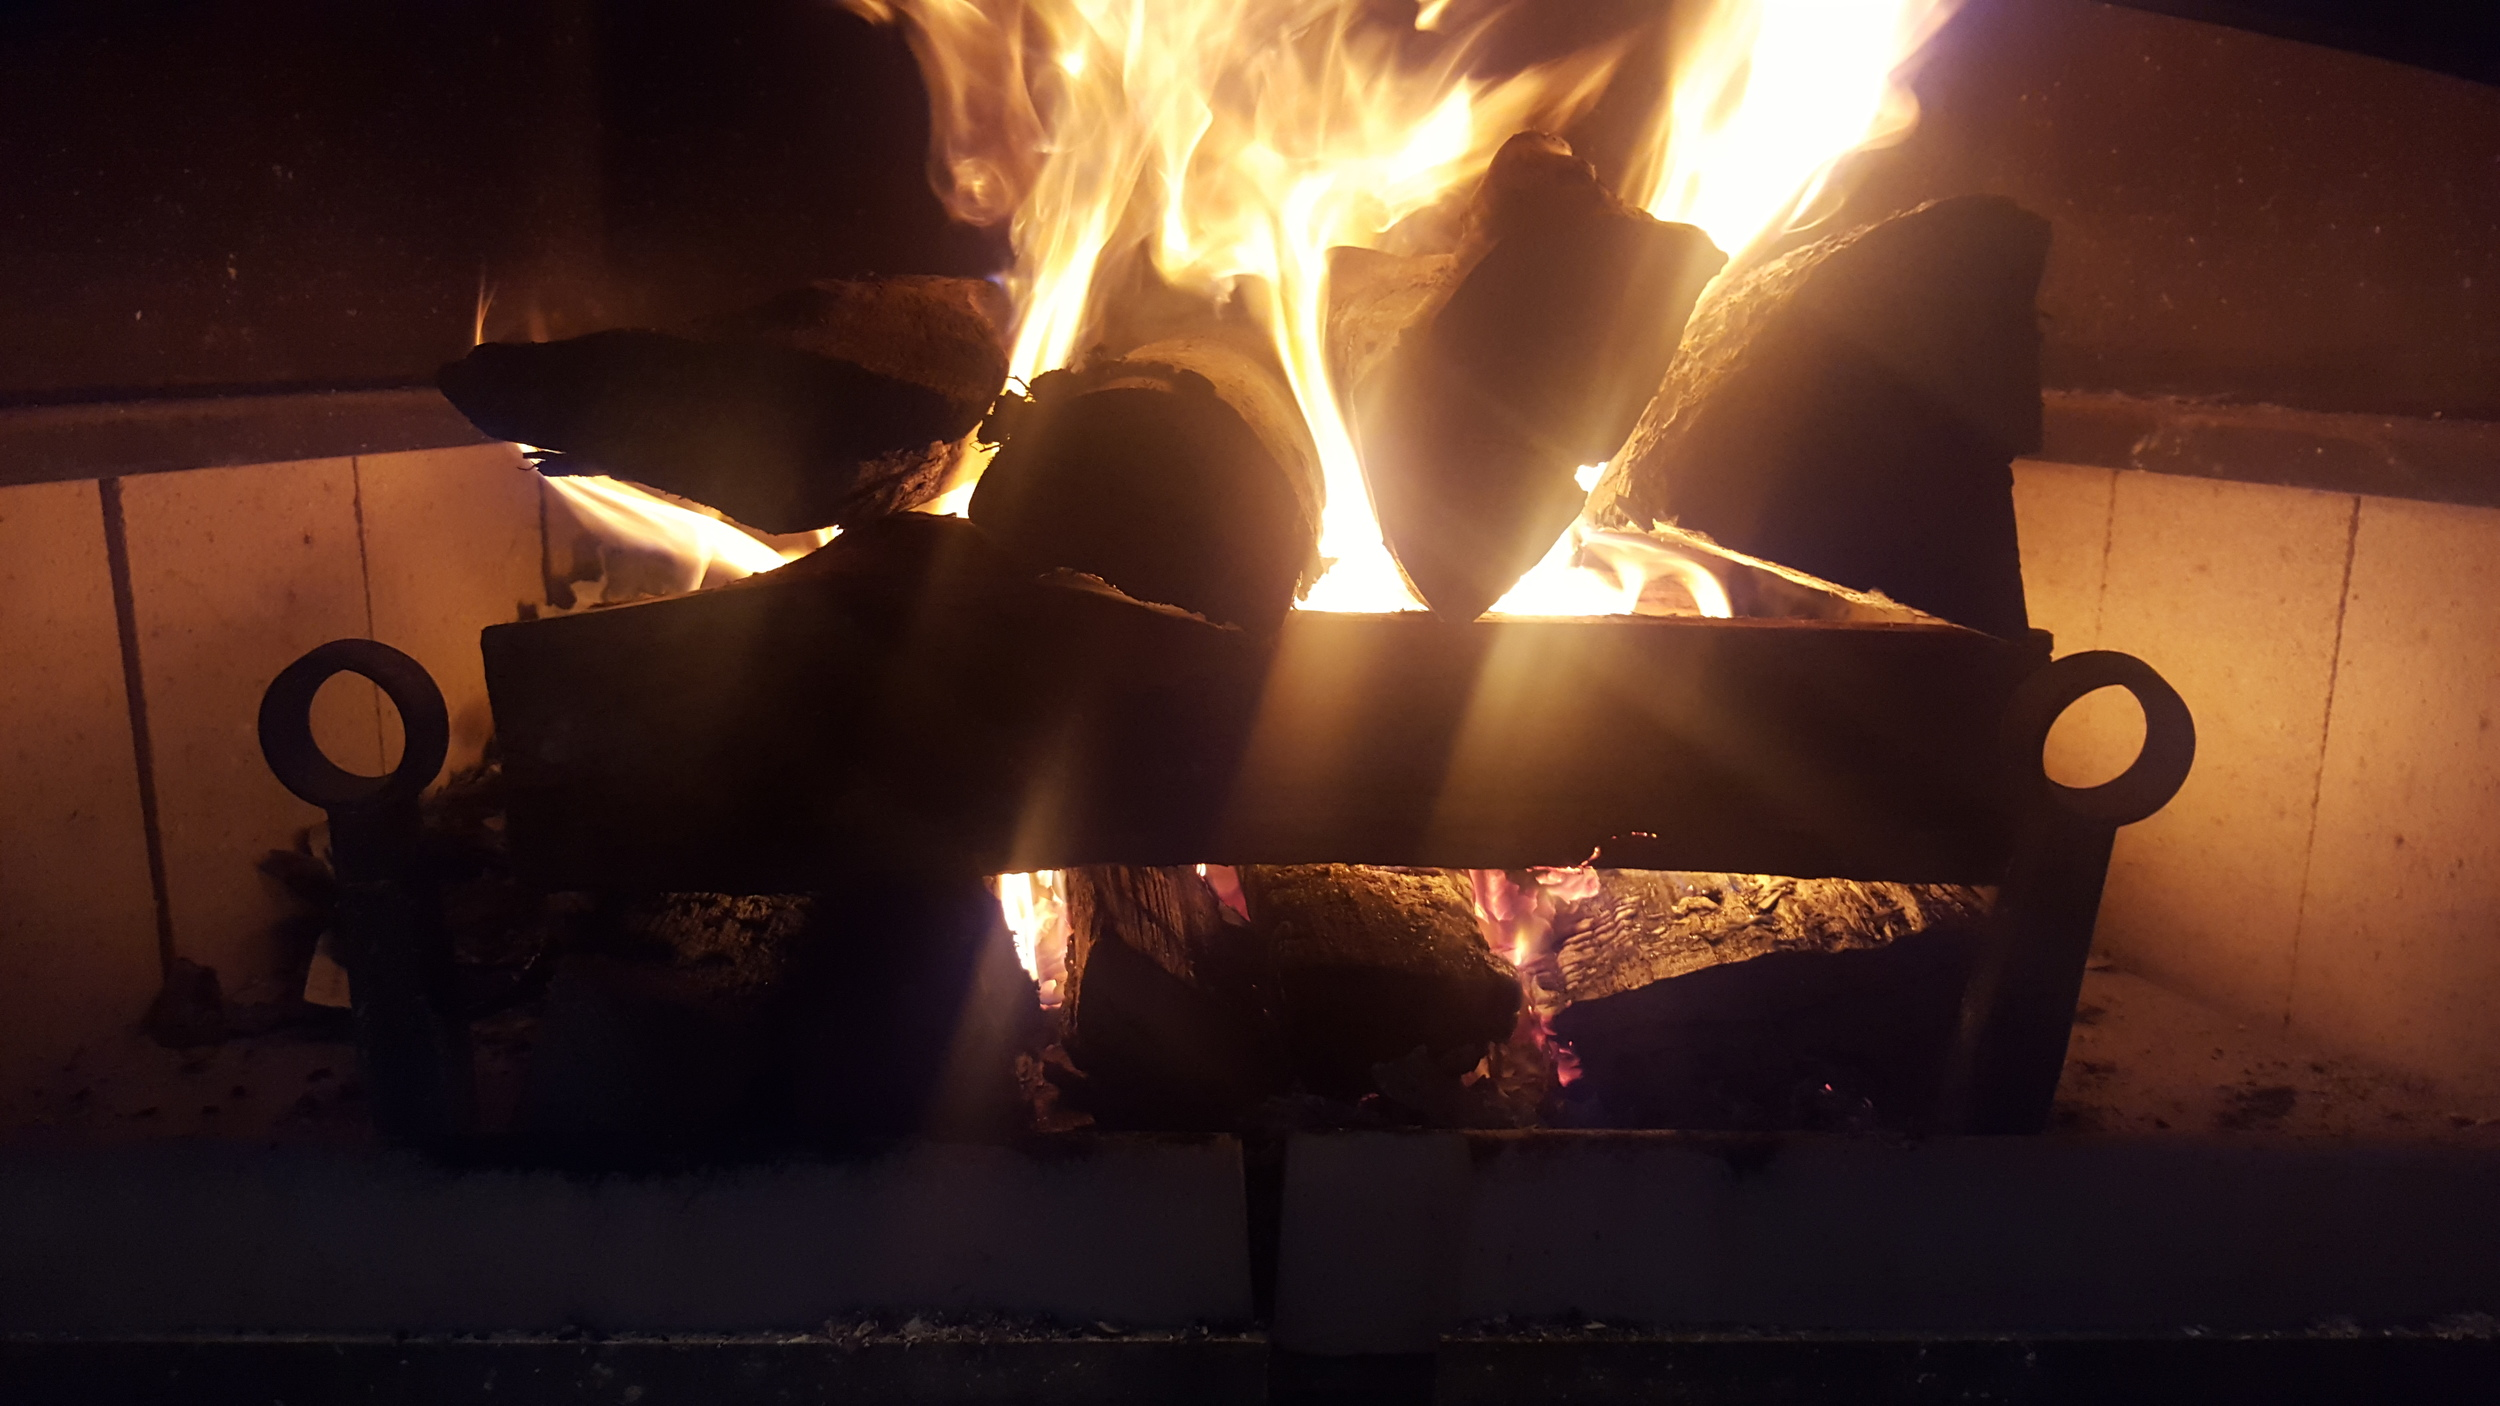 Firewood added in similar cob formation on top of embers from kindle fire